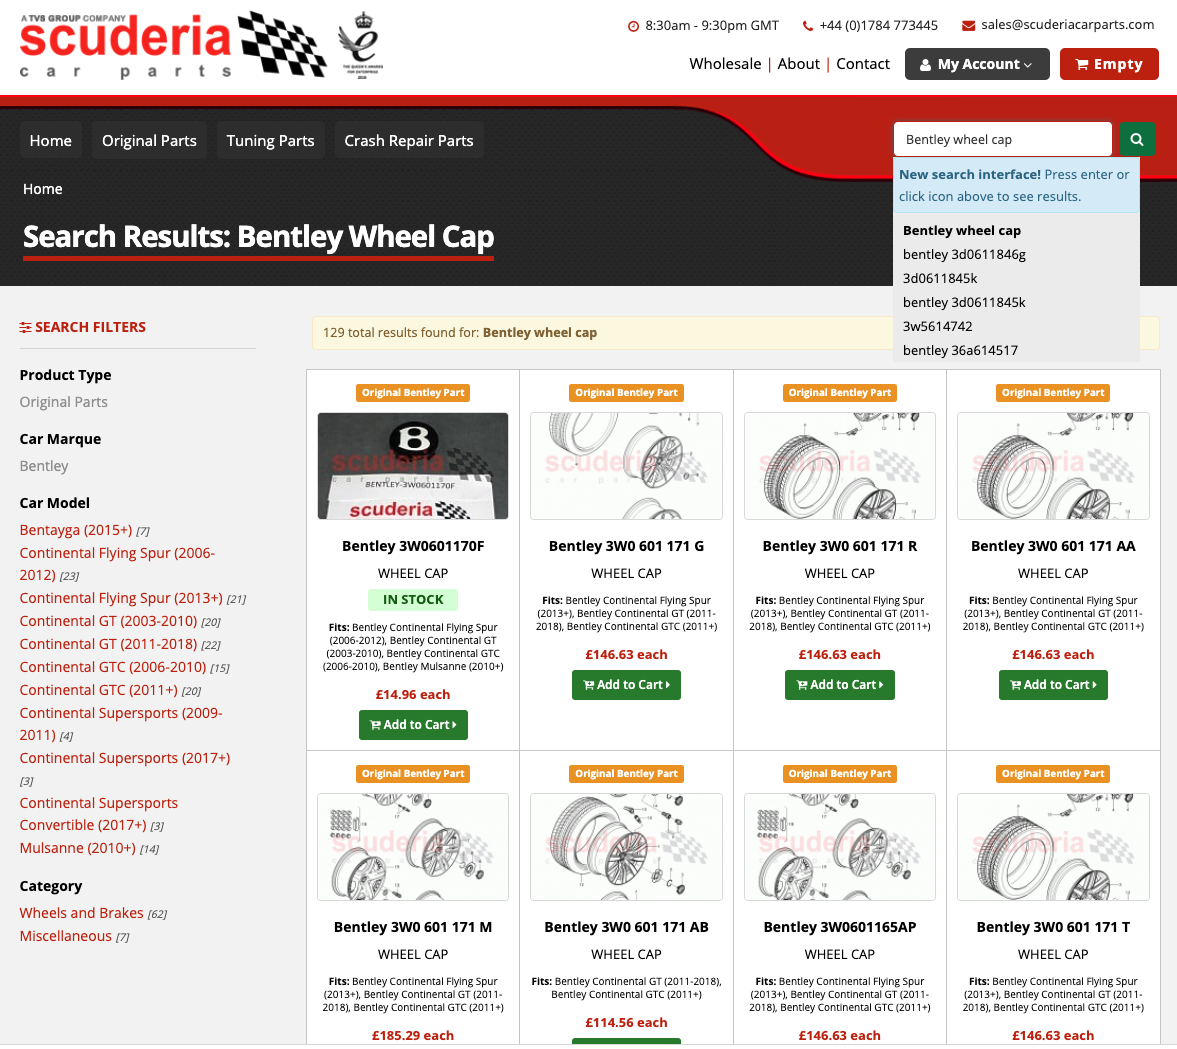 Scuderia – Improving Visibility on Search